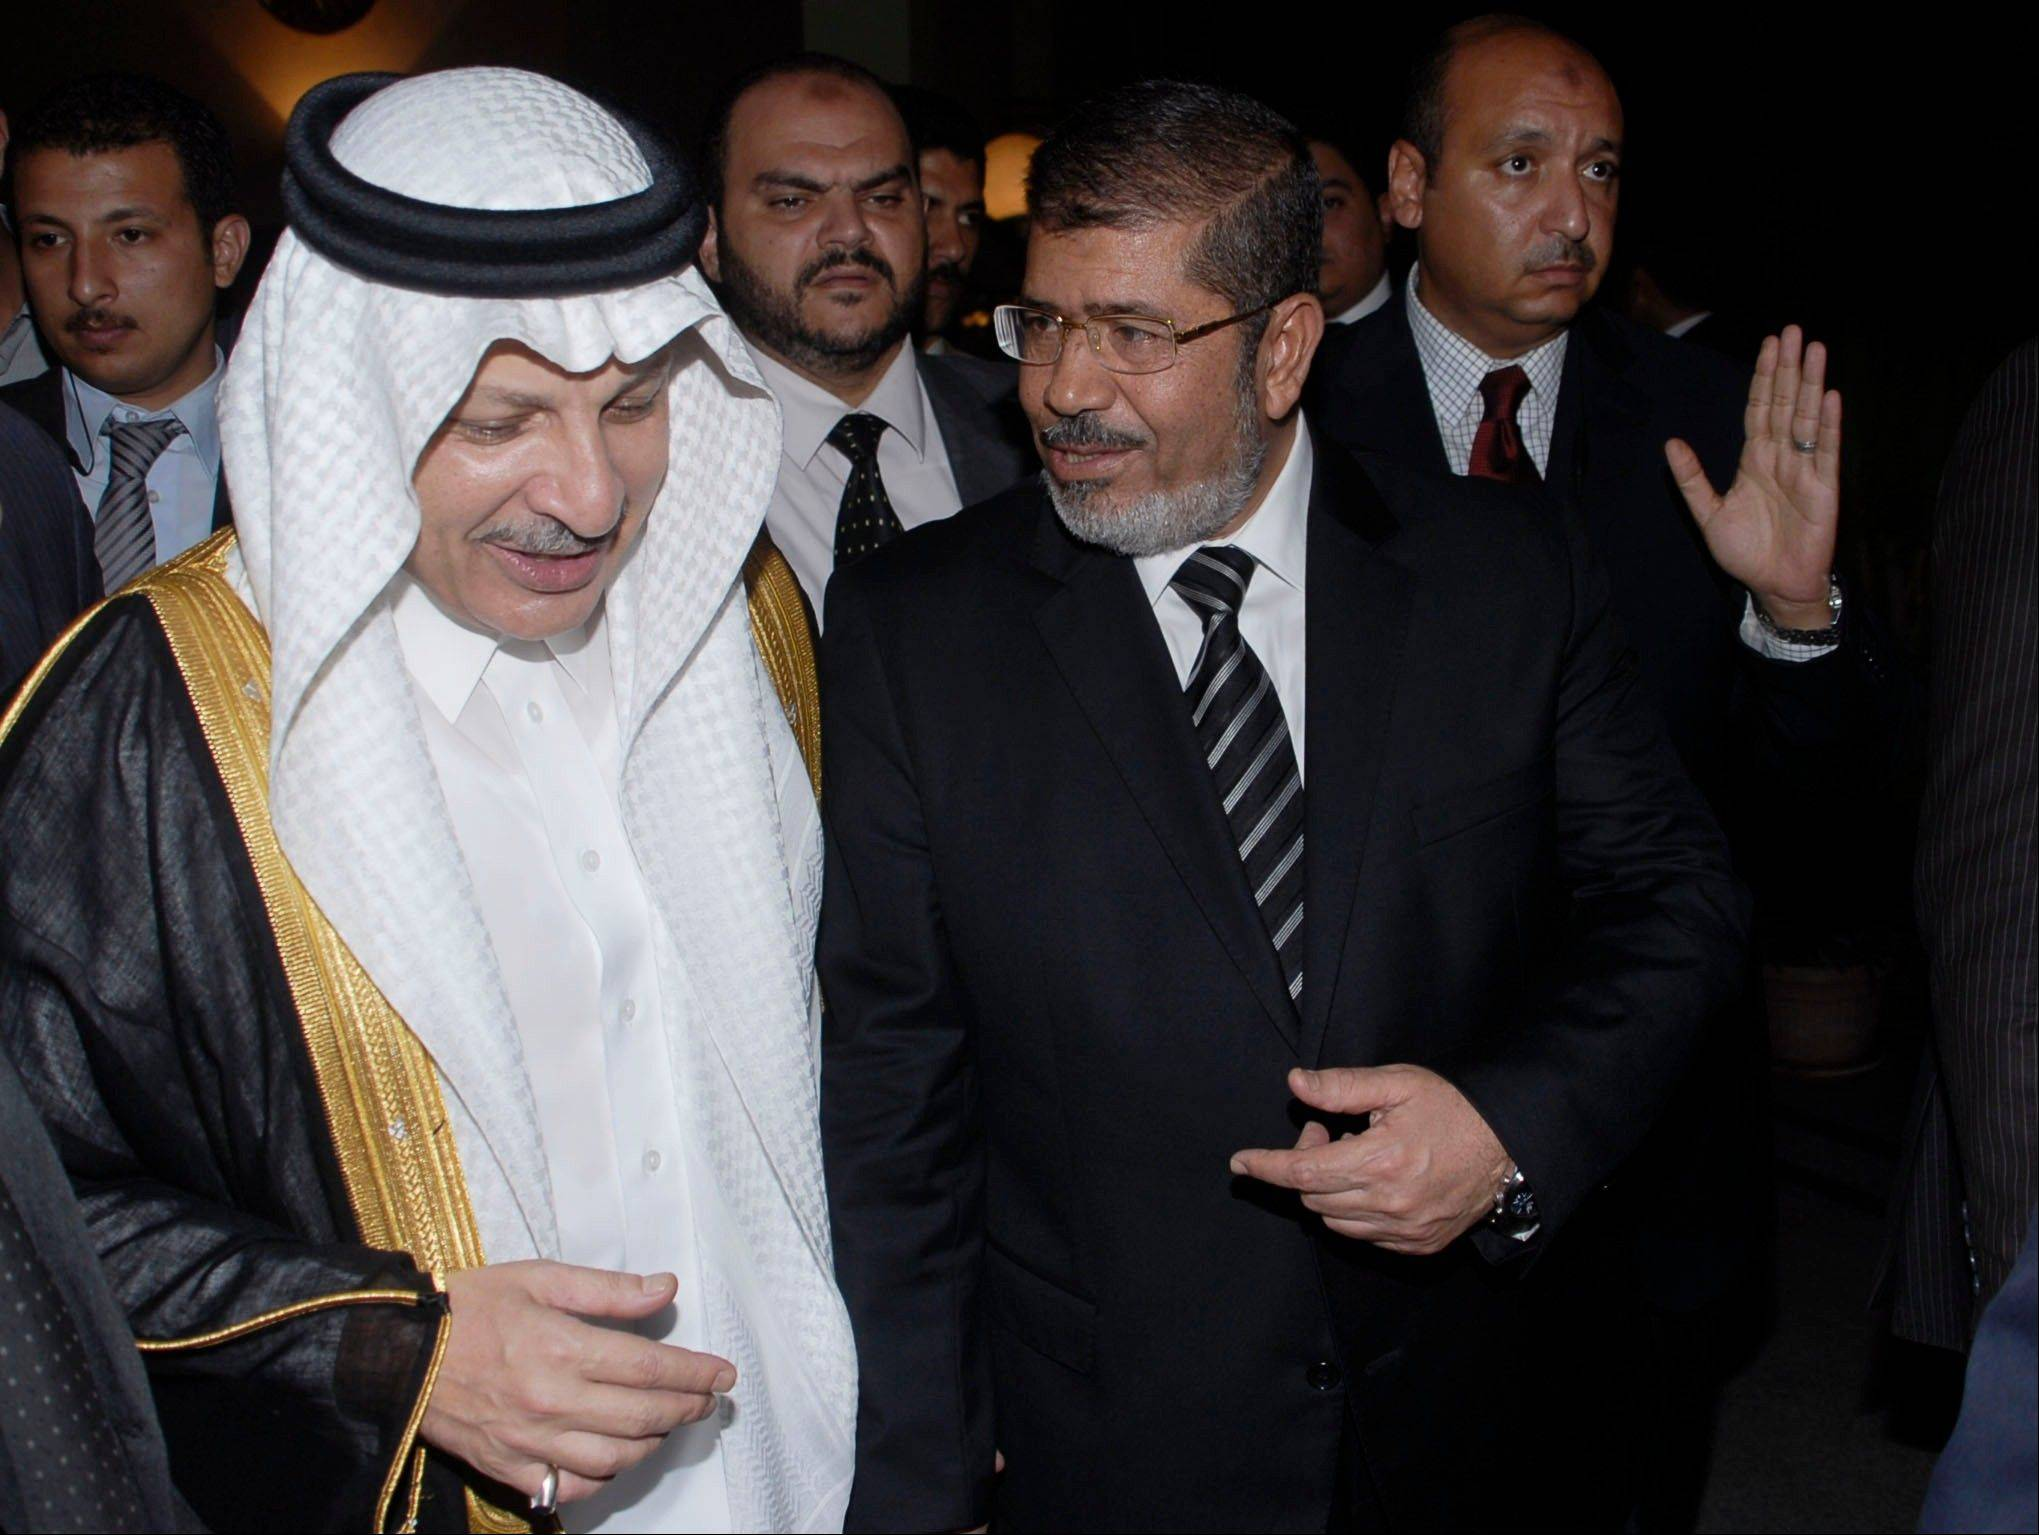 Ahmed Kattan, Saudi Arabia's ambassador to Egypt, left, and Islamist presidential candidate Mohammed Morsi attend the funeral of late Crown Prince Nayef bin Abdul-Aziz in Cairo on Monday. Morsi claimed victory Monday in Egypt's presidential vote.